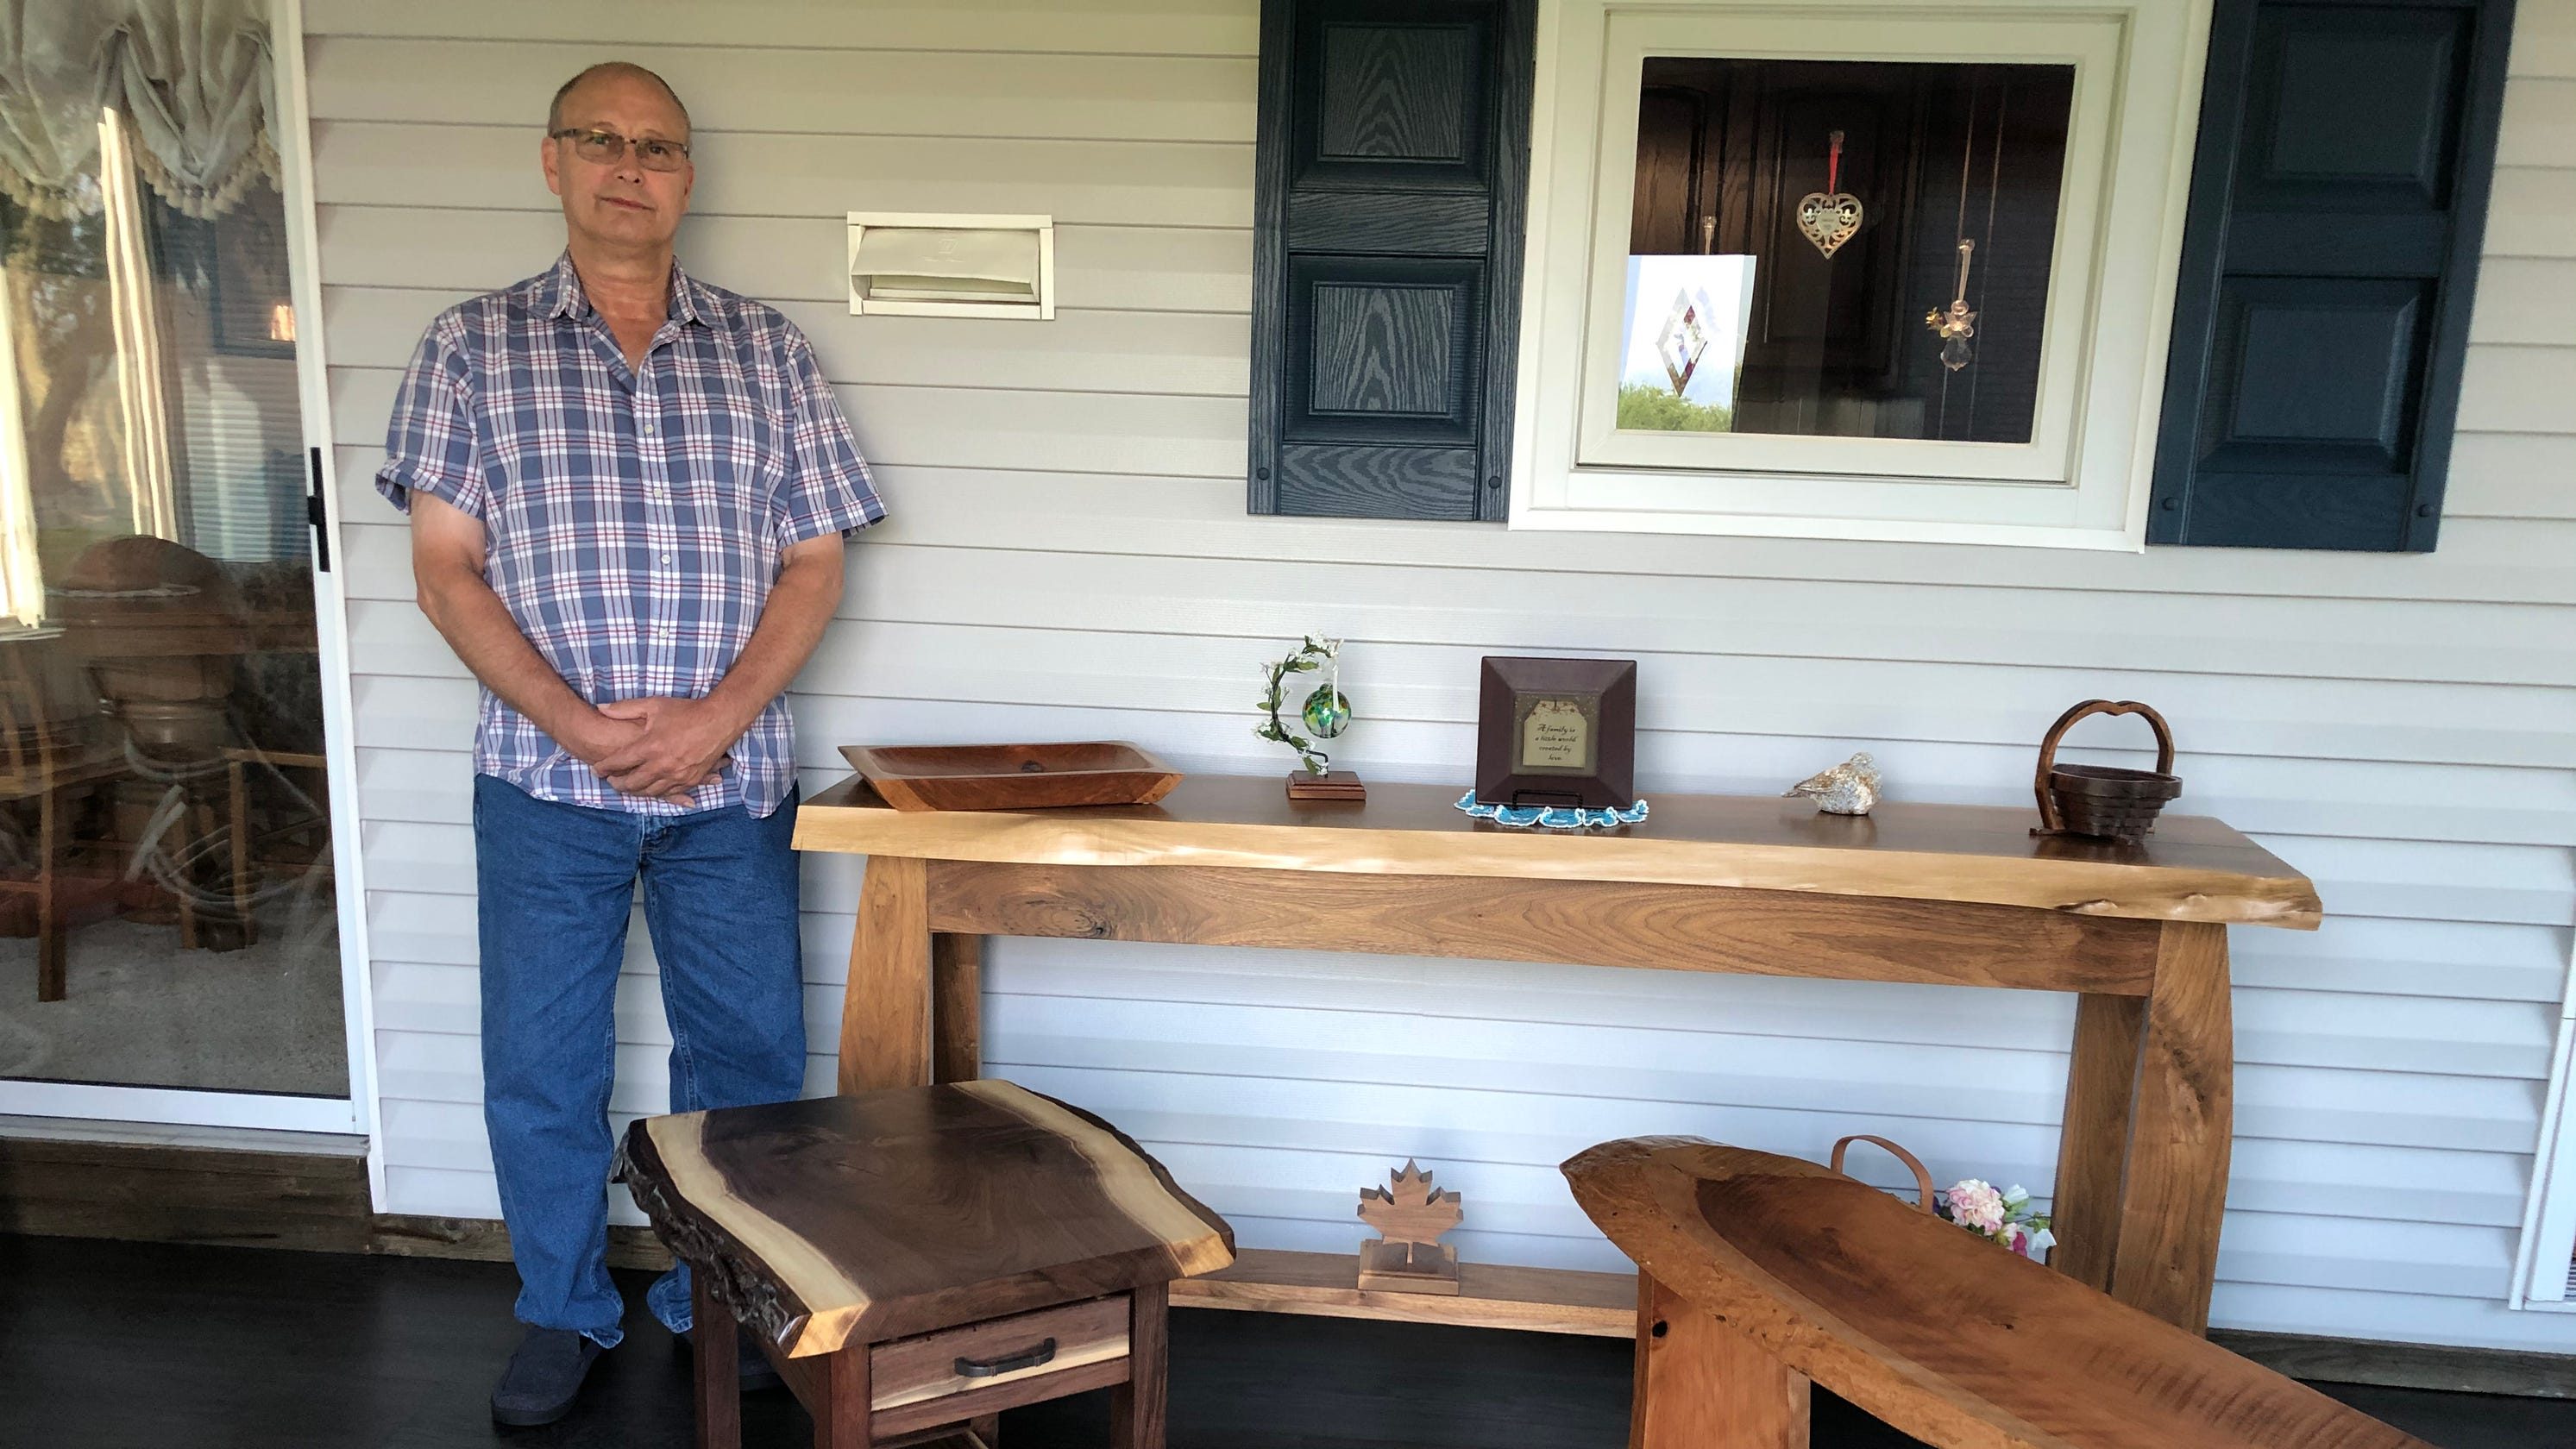 Woodworking hobby keeps Hambel busy in retirement